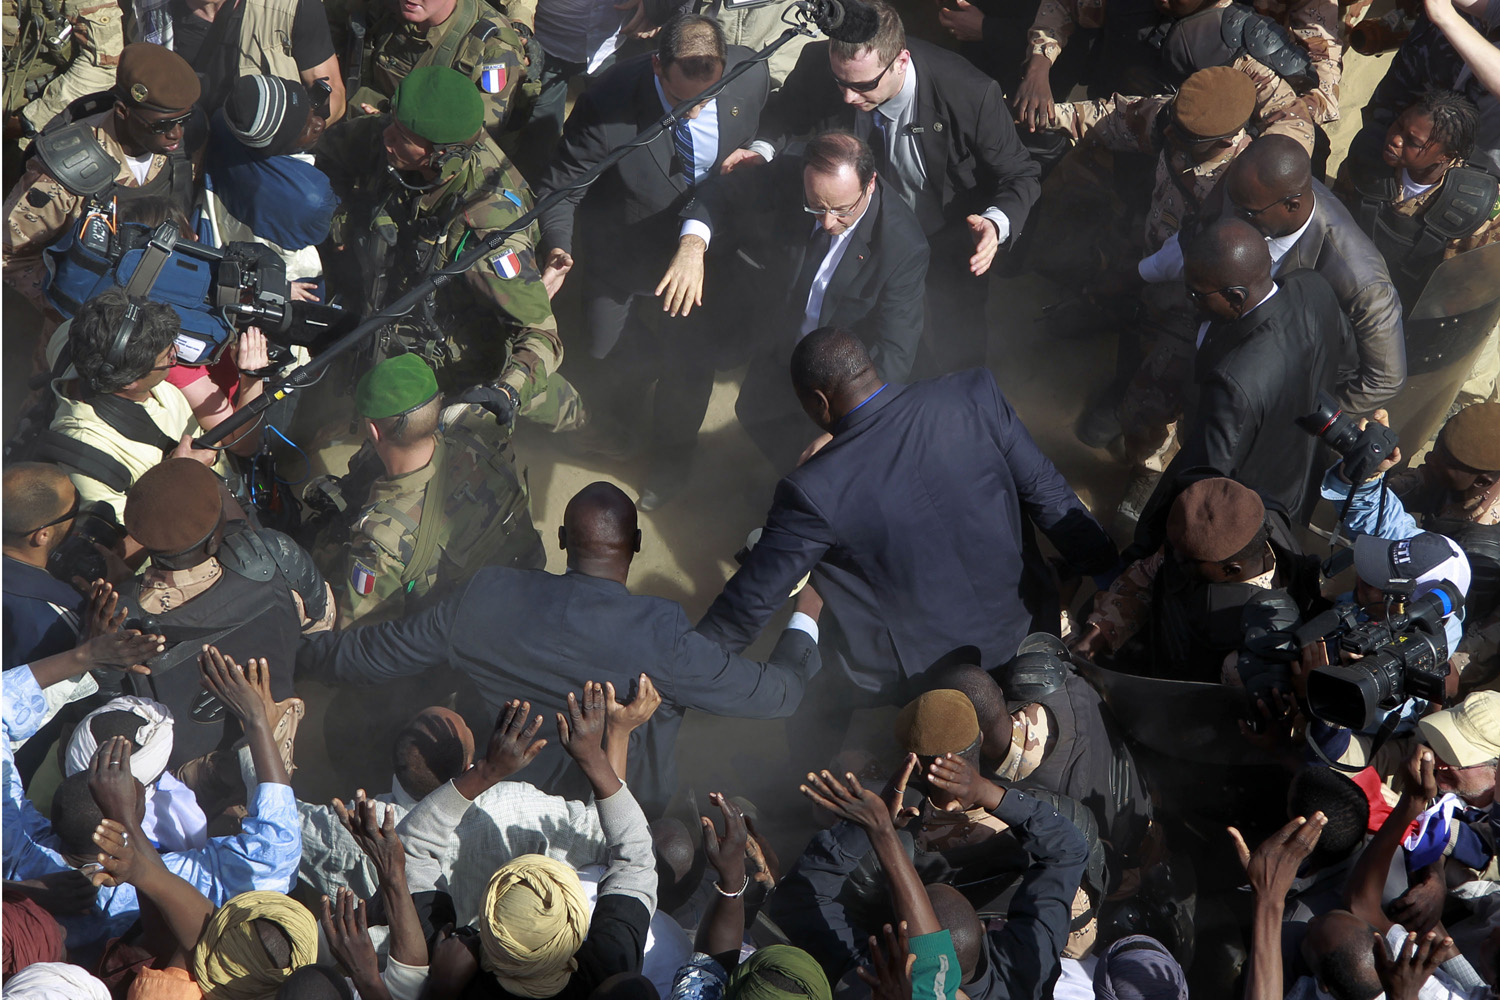 Feb. 2, 2013. French President Francois Hollande, upper center, is surrounded by security as he greets well-wishers during his two-hour-long visit to Timbuktu, Mali.